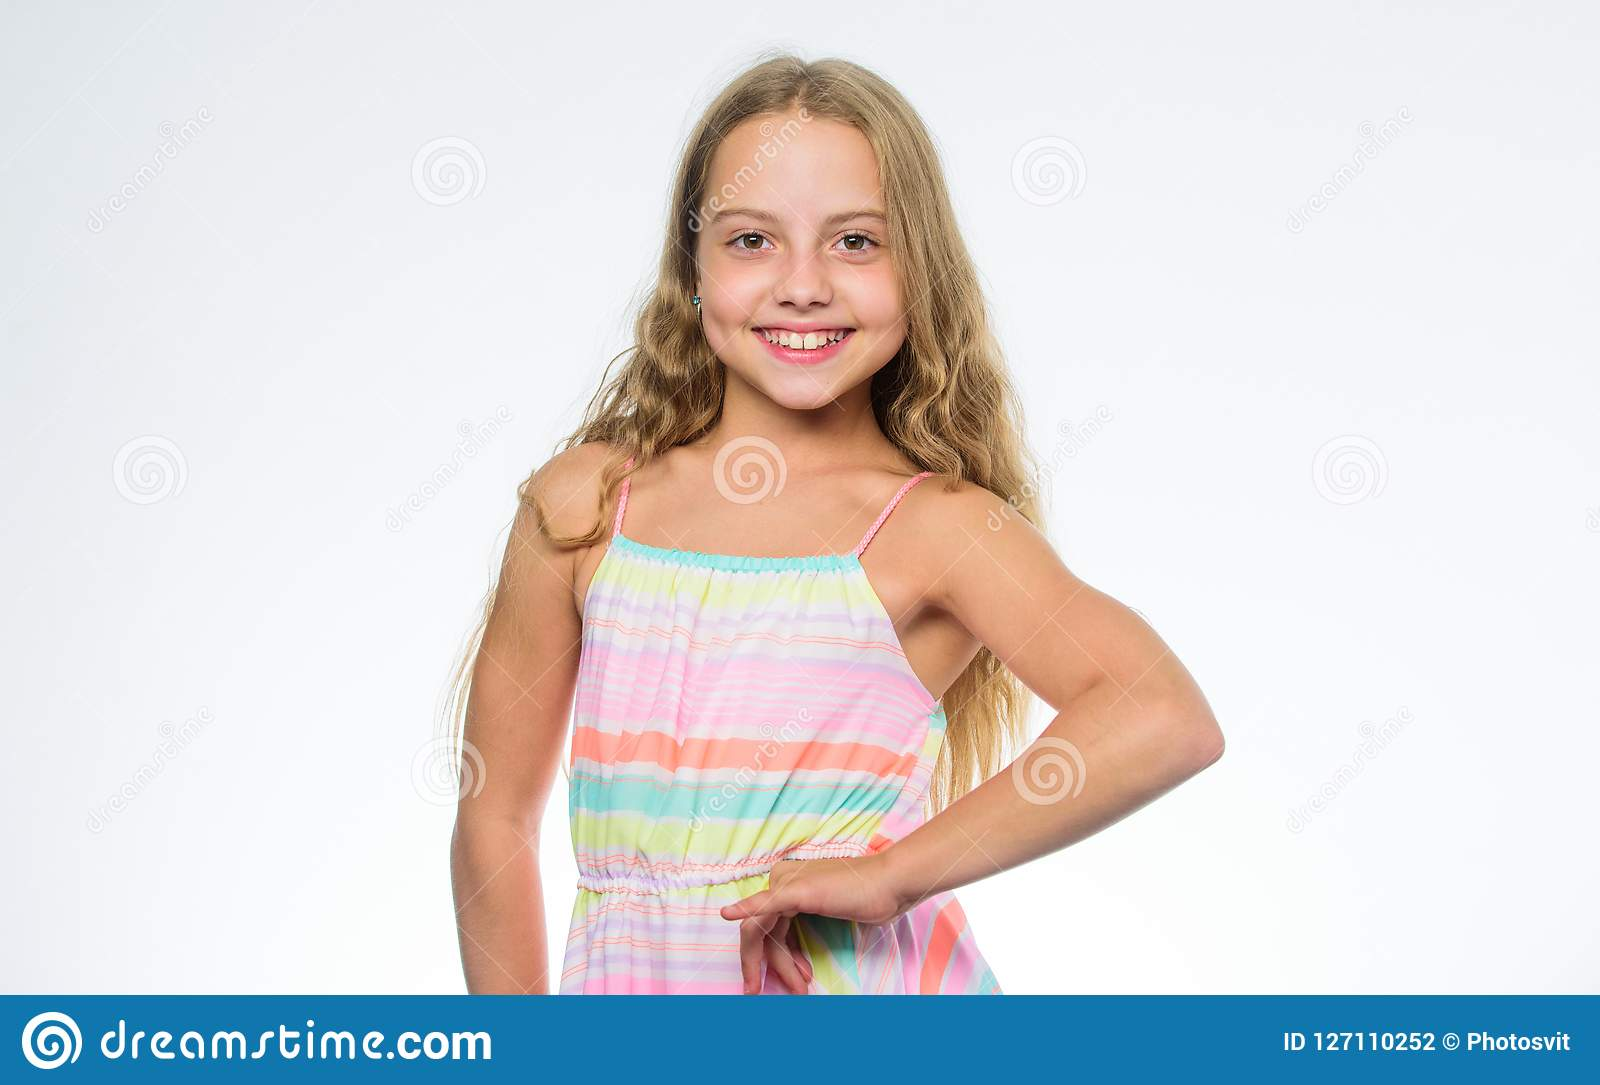 Girl long hair smiling face white background. Natural beauty. Teaching your child healthy hair care habits. Hair care